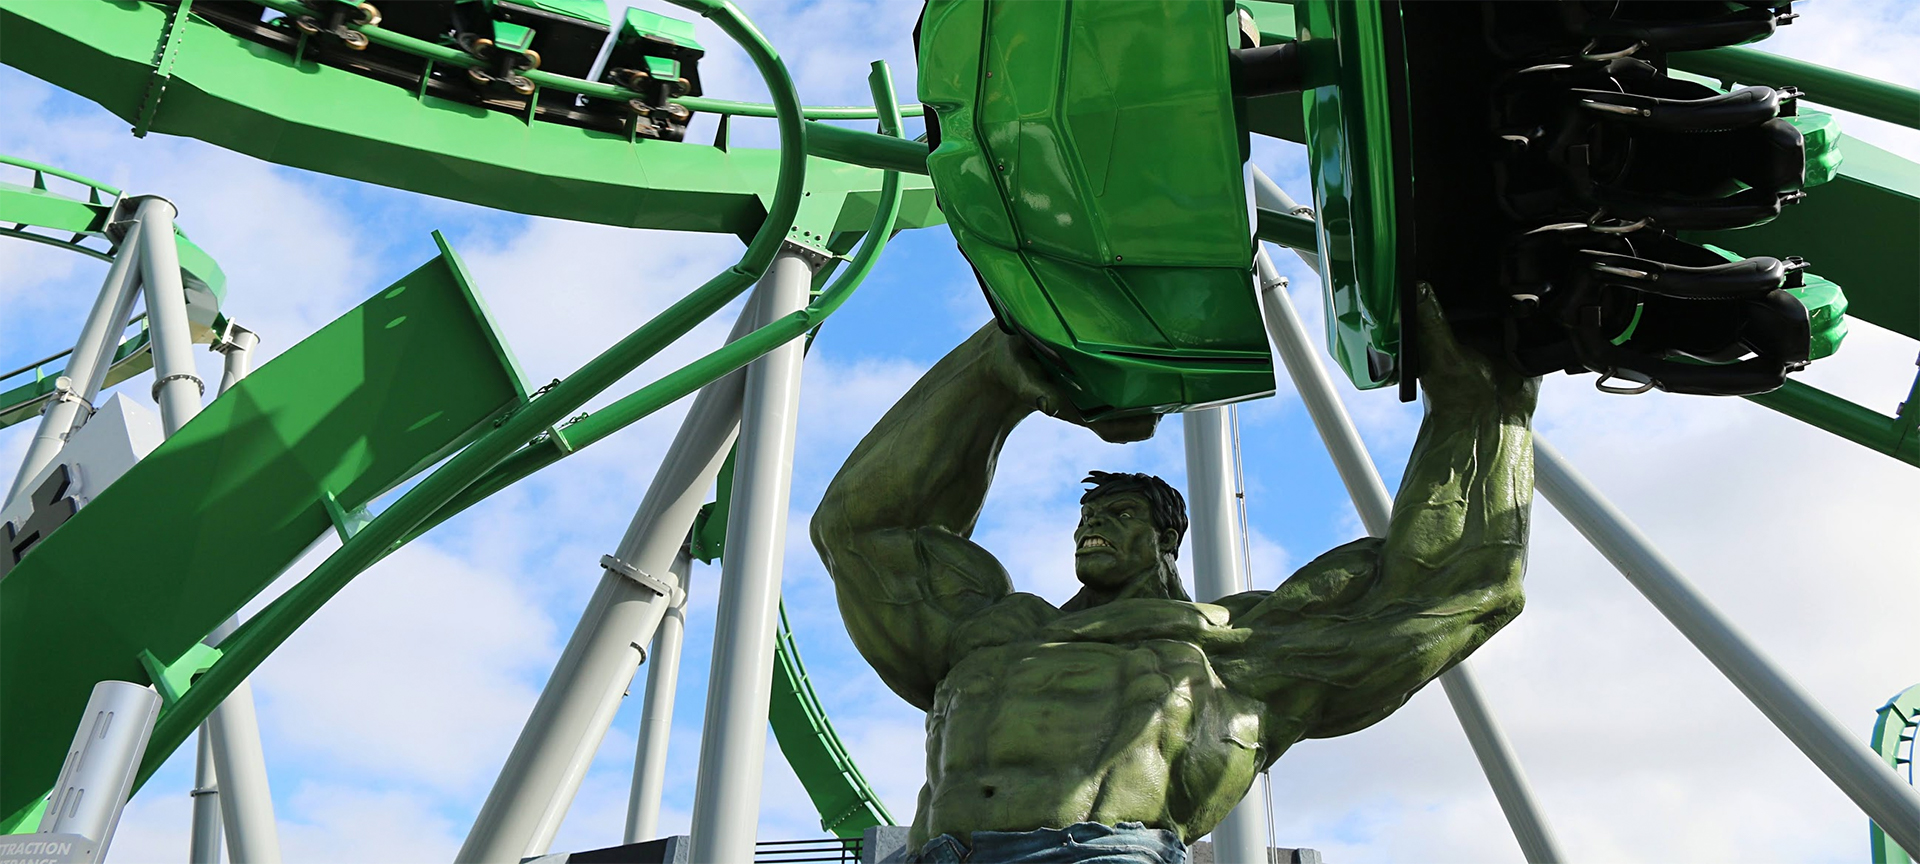 Universal Parks are the perfect choice if you are into thrill rides like we are; there are so many of them! At Universal Studios, the Hulk rollercoaster will make your head spin. You'll also feel like you're walking through different movie favorites, with something for everyone as their features span generations.